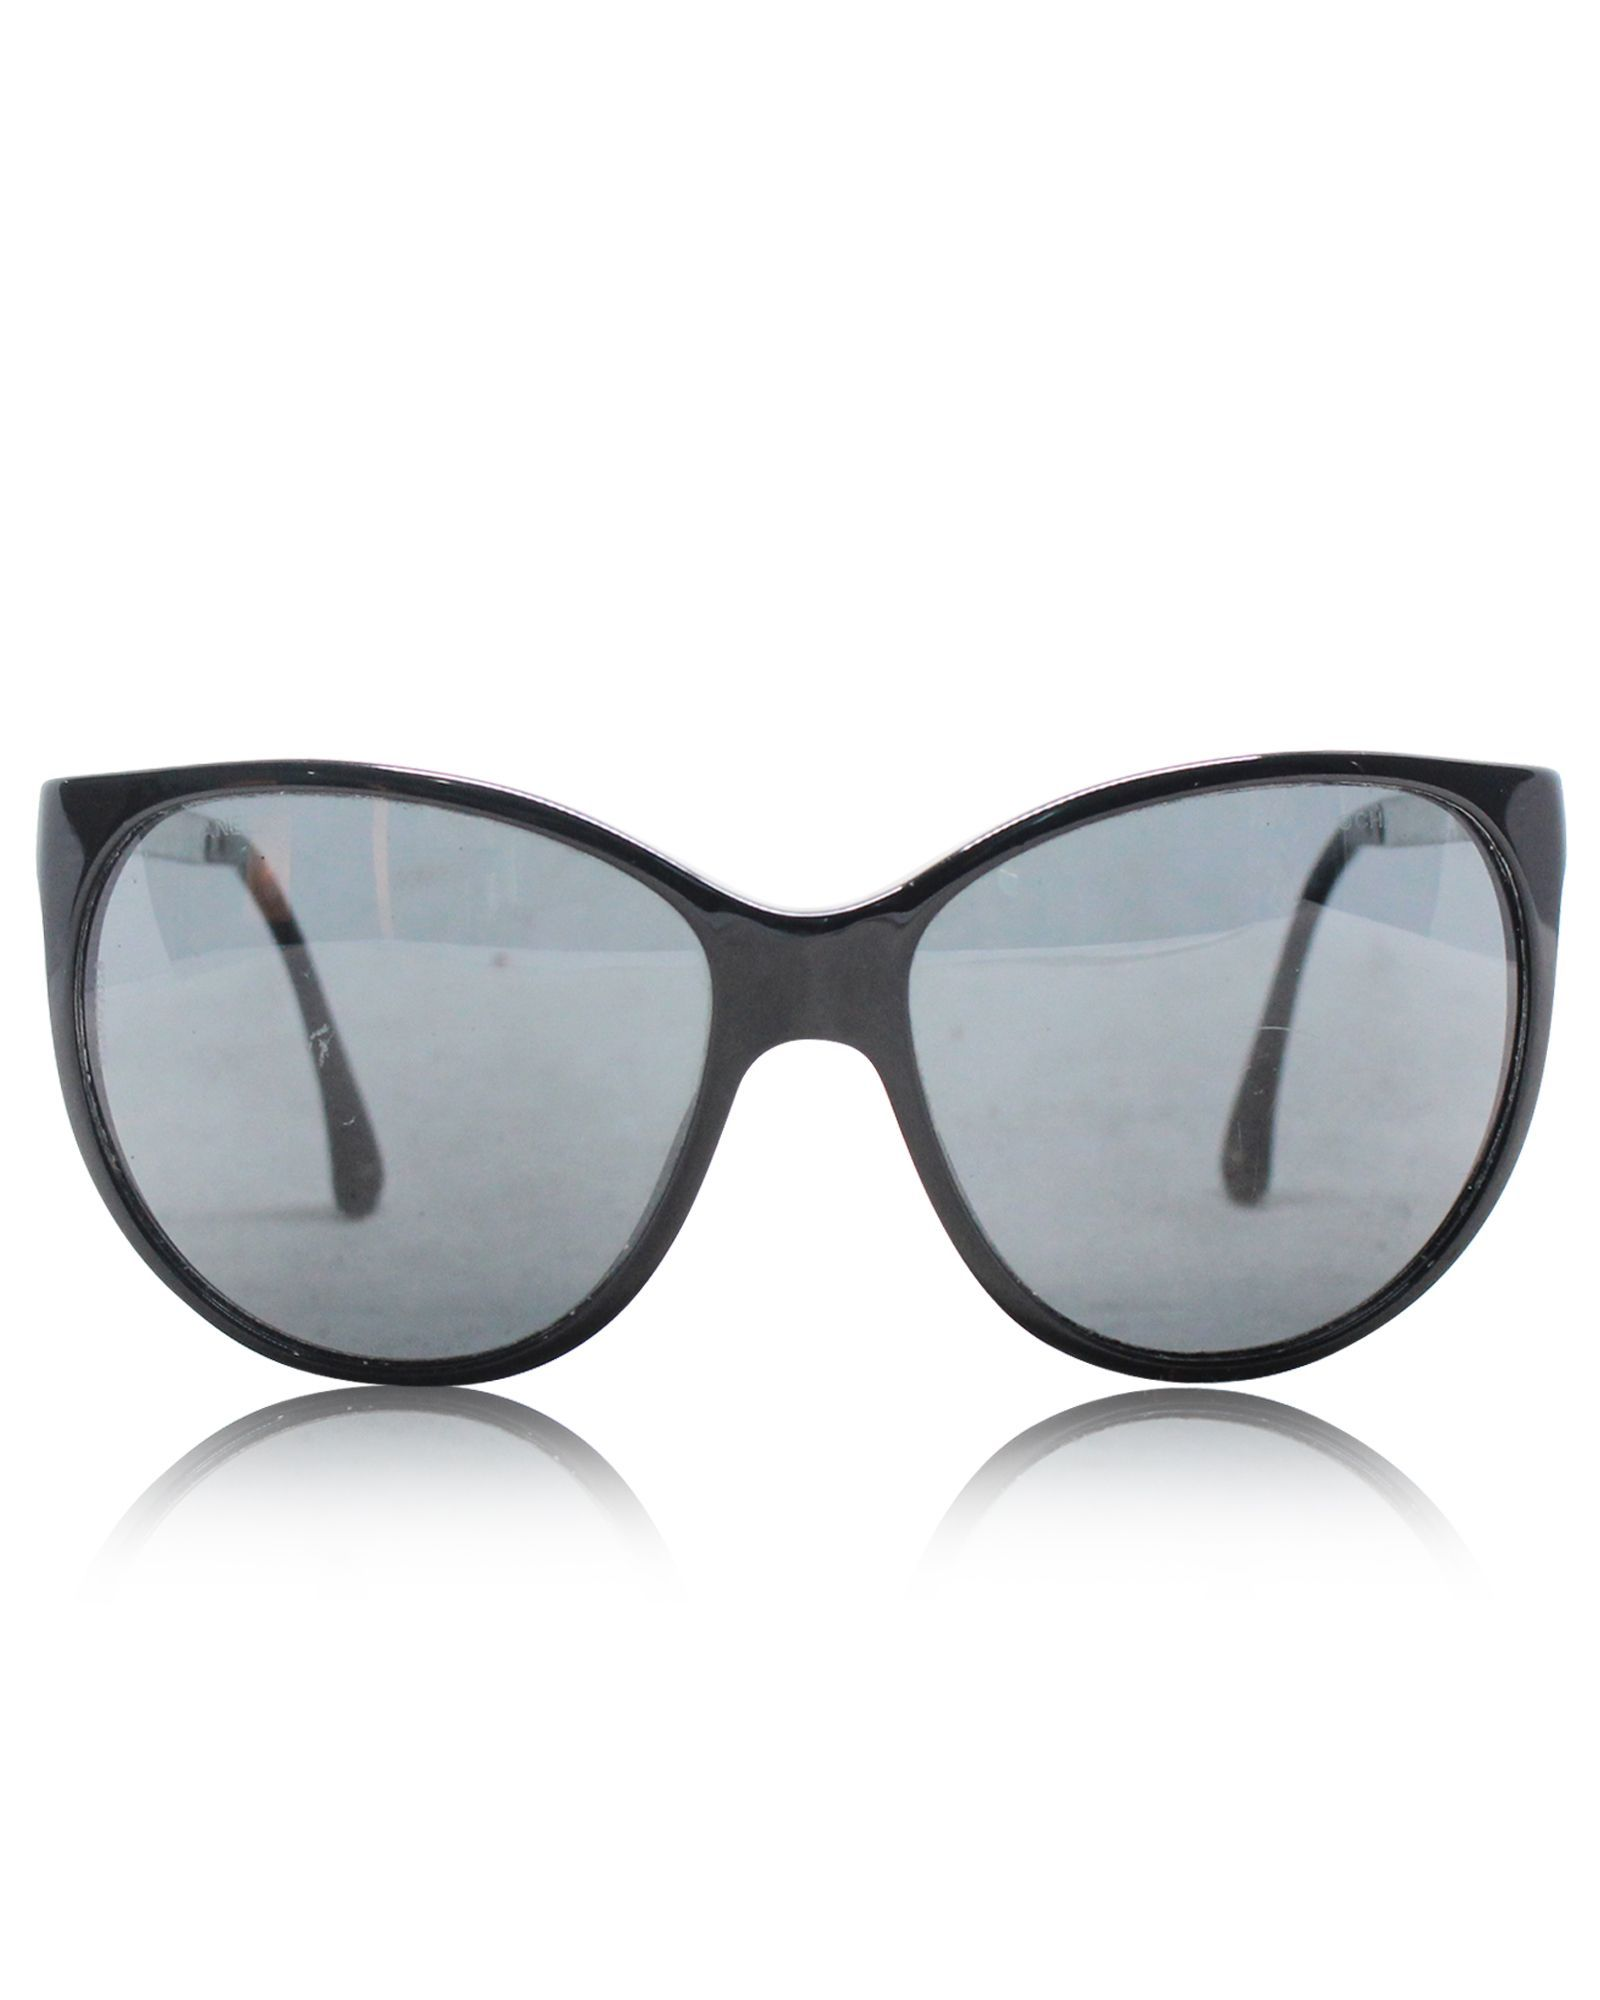 Chanel Butterfly Black Sunglasses -Pre Owned Condition Gently Loved